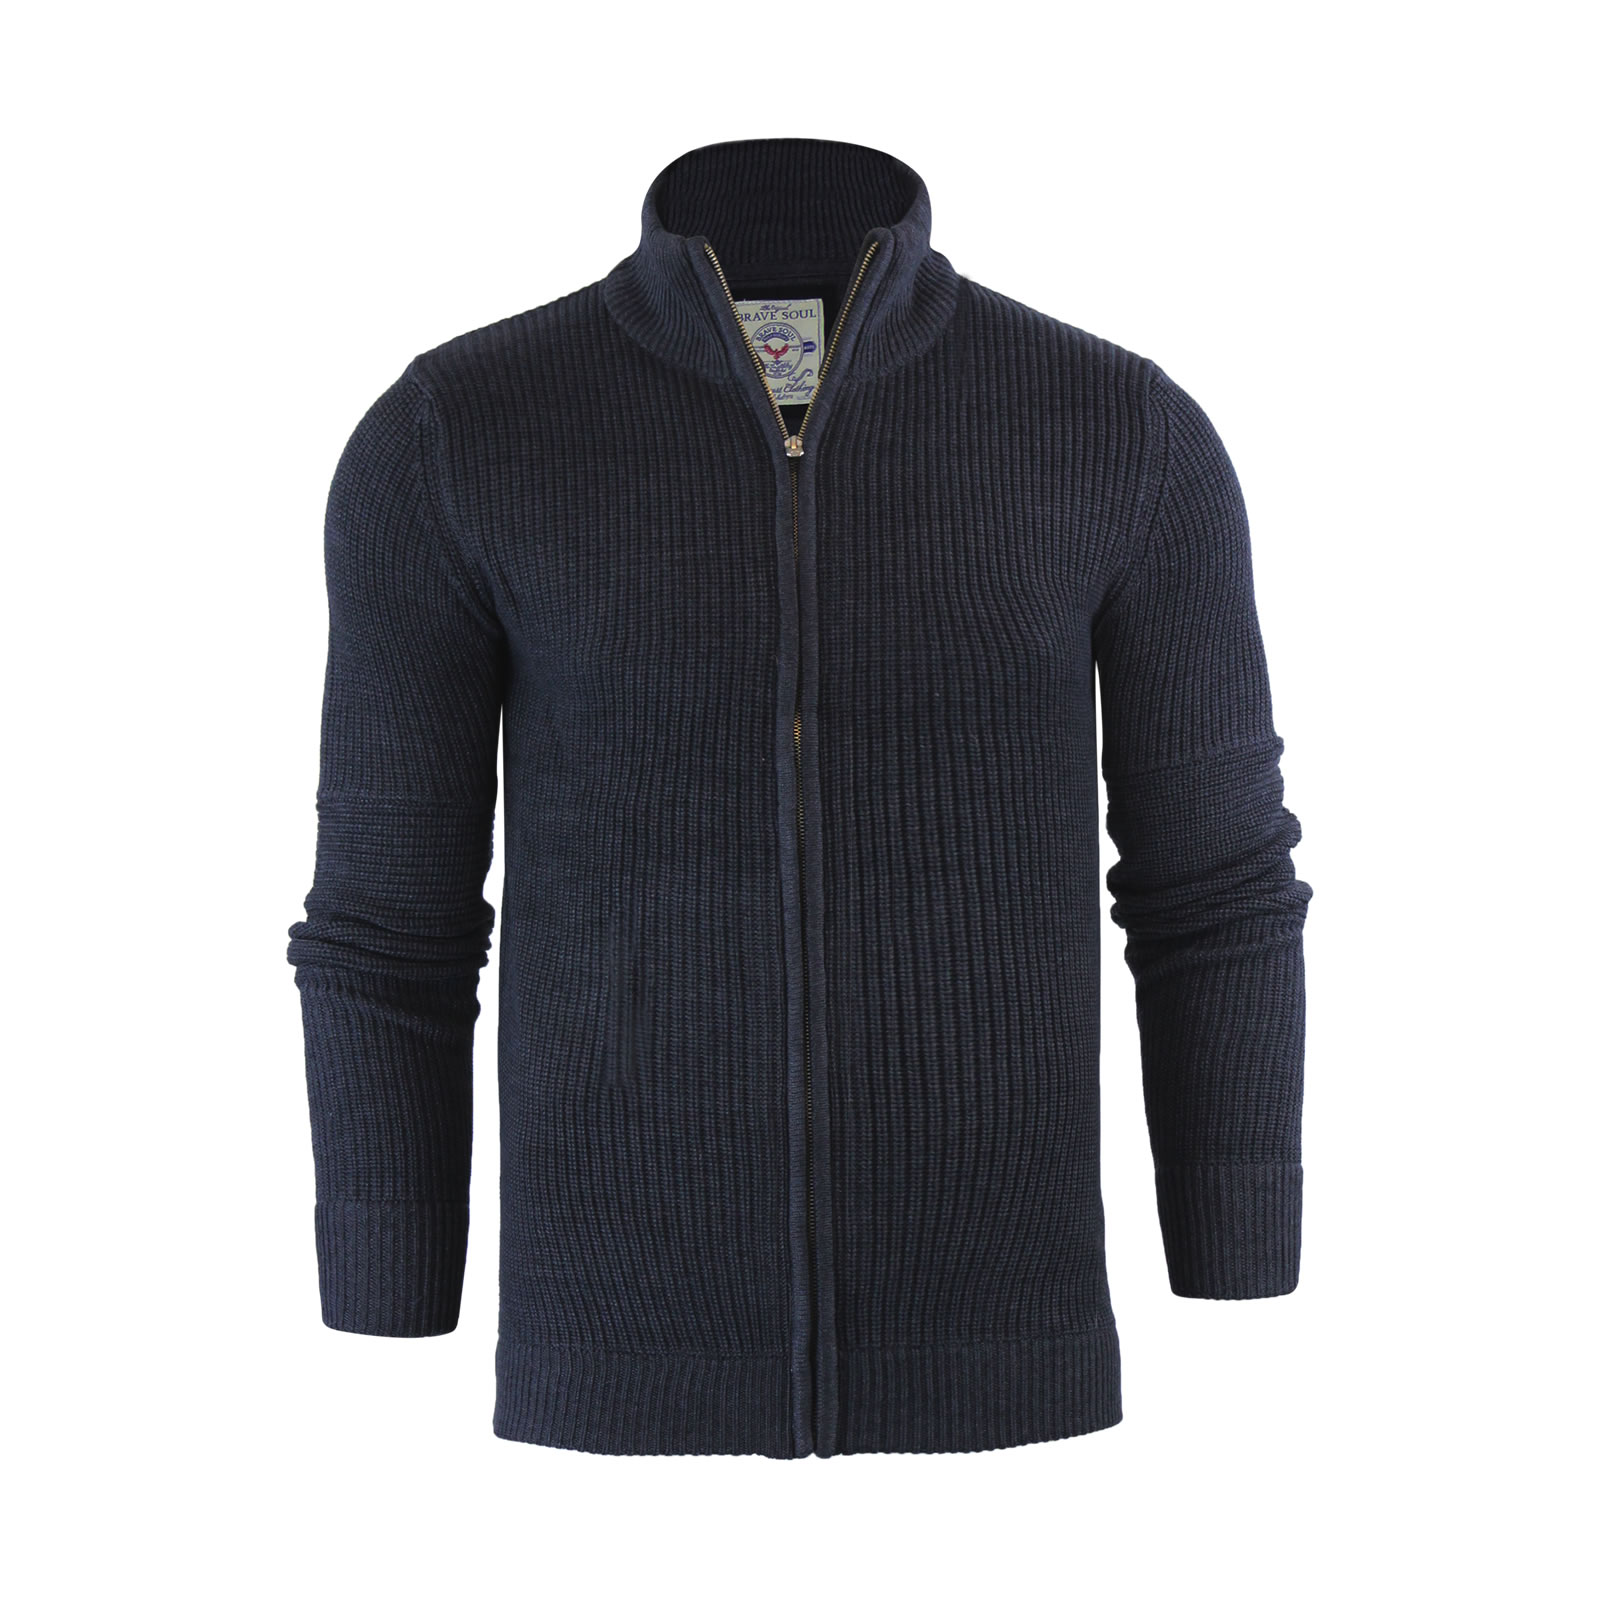 Mens Zip Cardigan Sweaters - English Sweater Vest